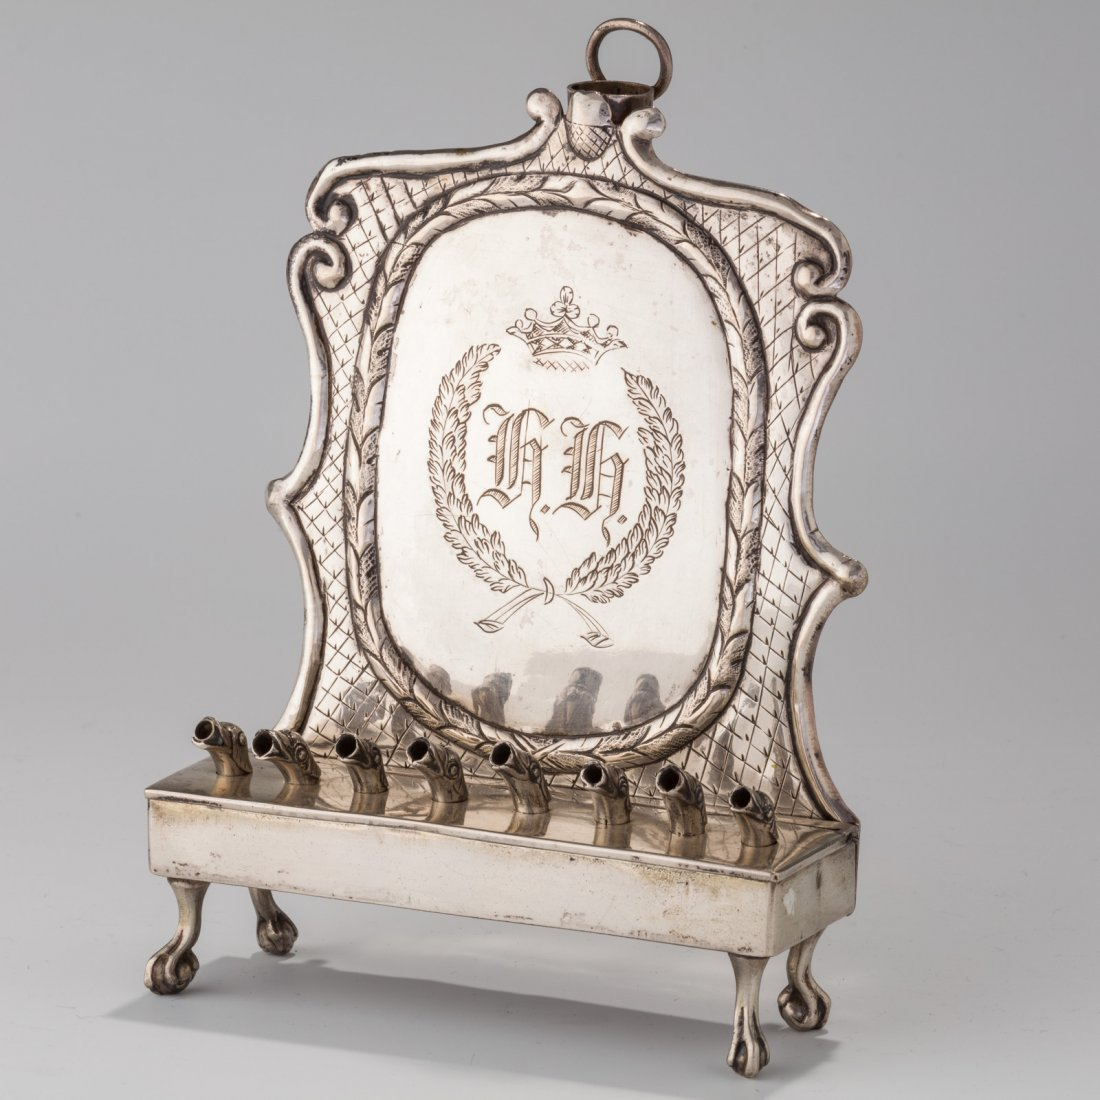 A SILVER CHANUKAH LAMP. Poland, Early 19th century. In